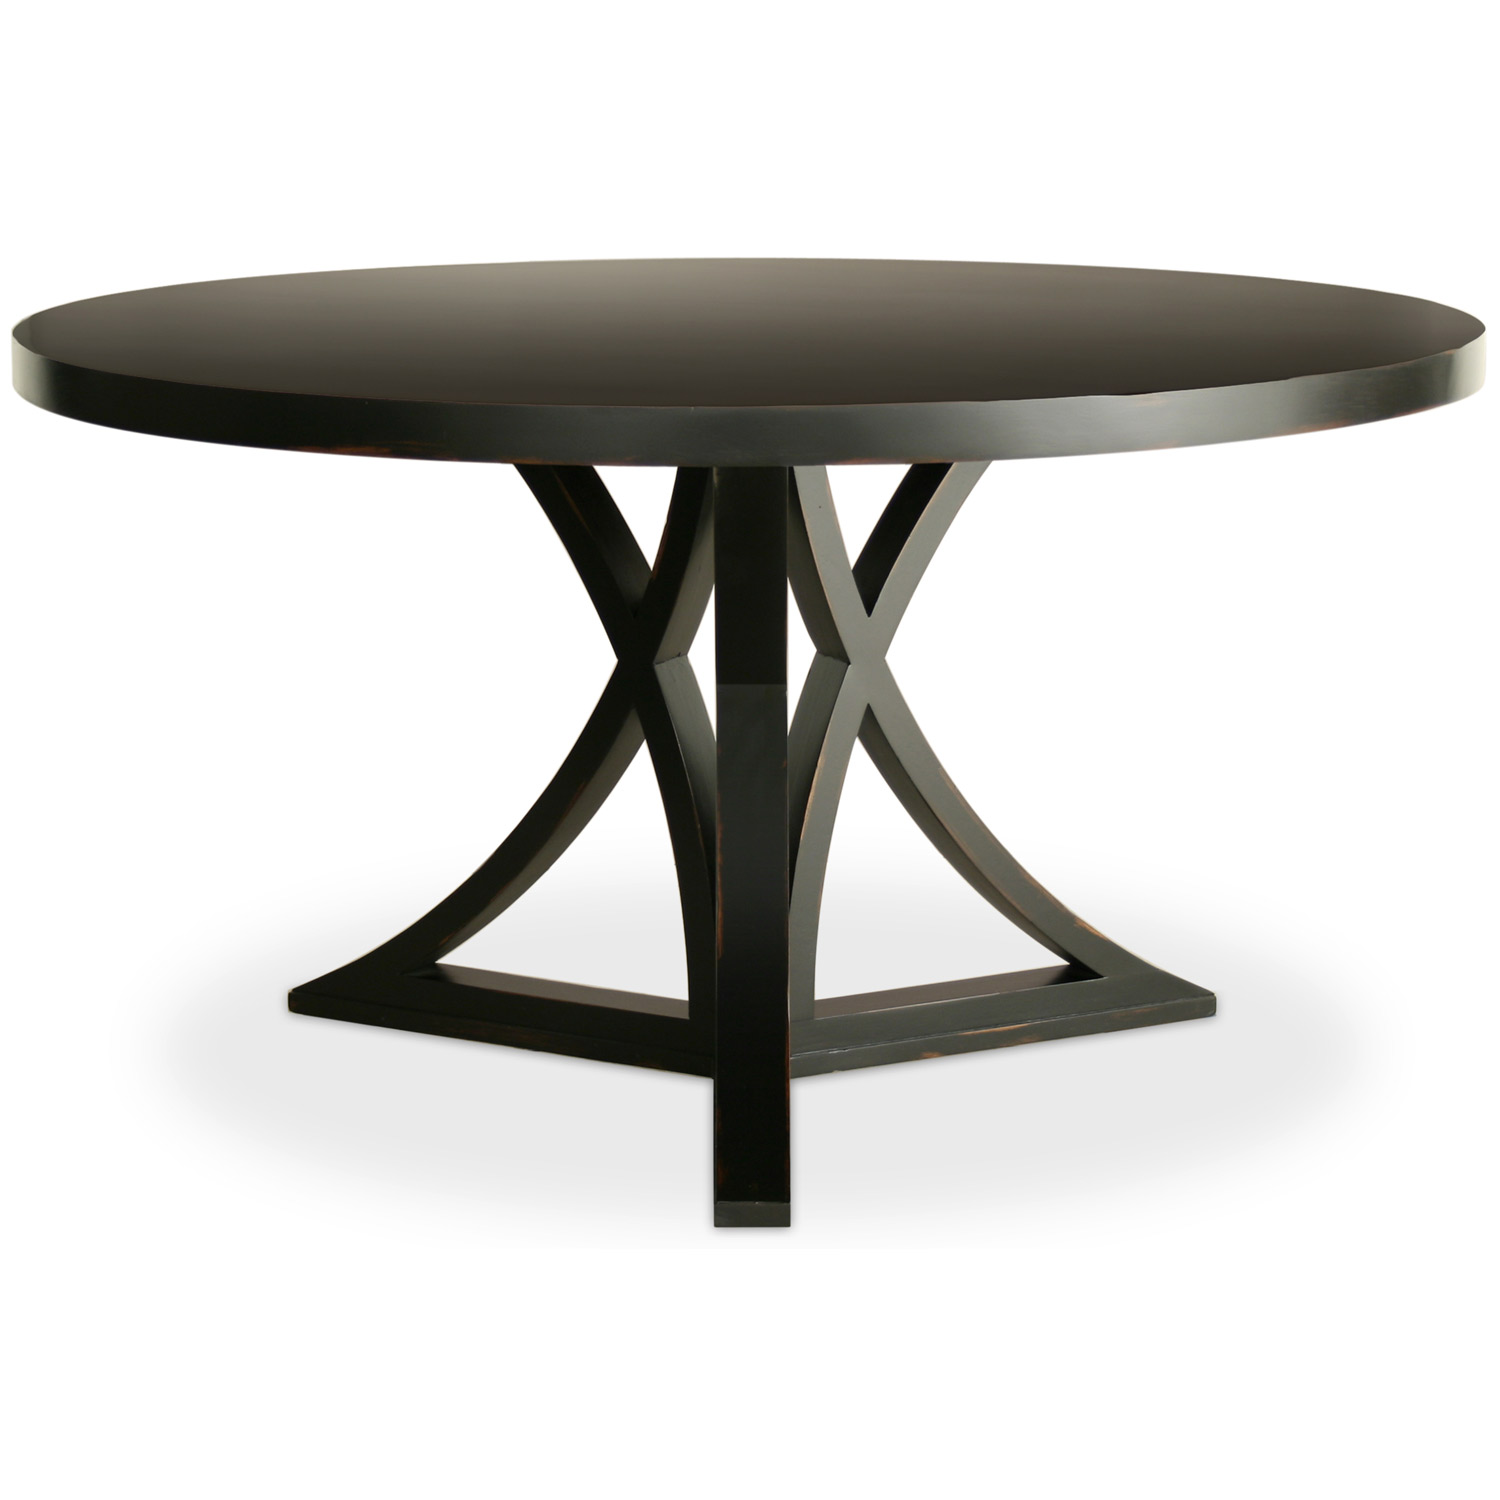 Cosy Round Dining Table 60 Inch 22. Dining Room: Stylish Inspiration ...